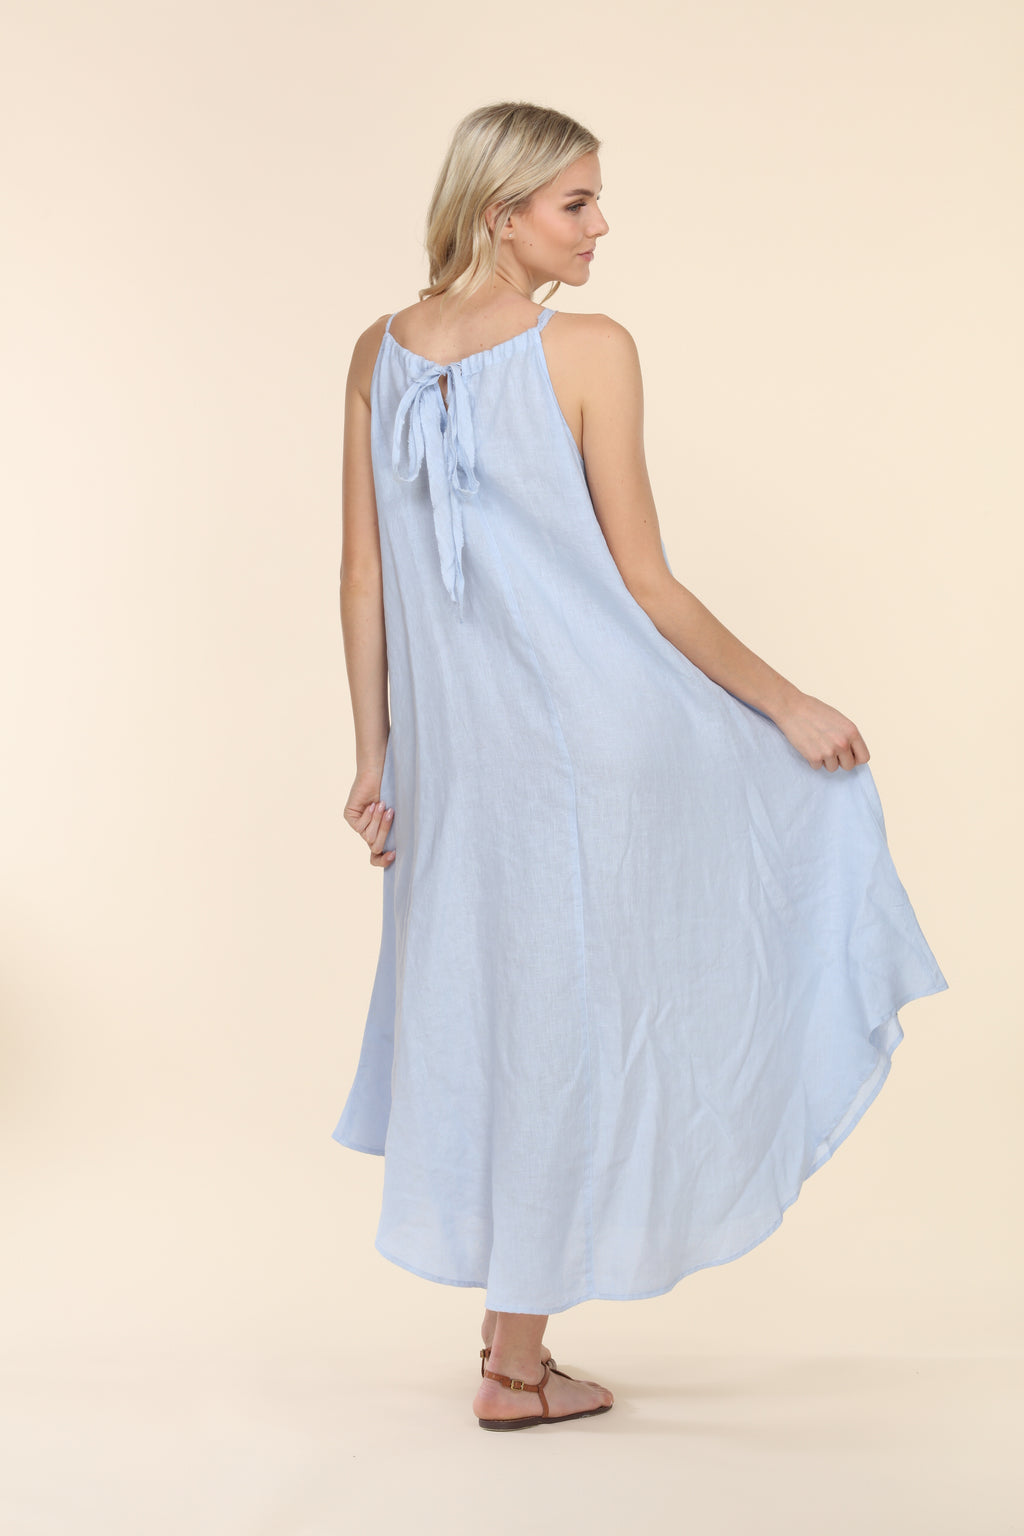 Linen Summer Dress - Baby Blue